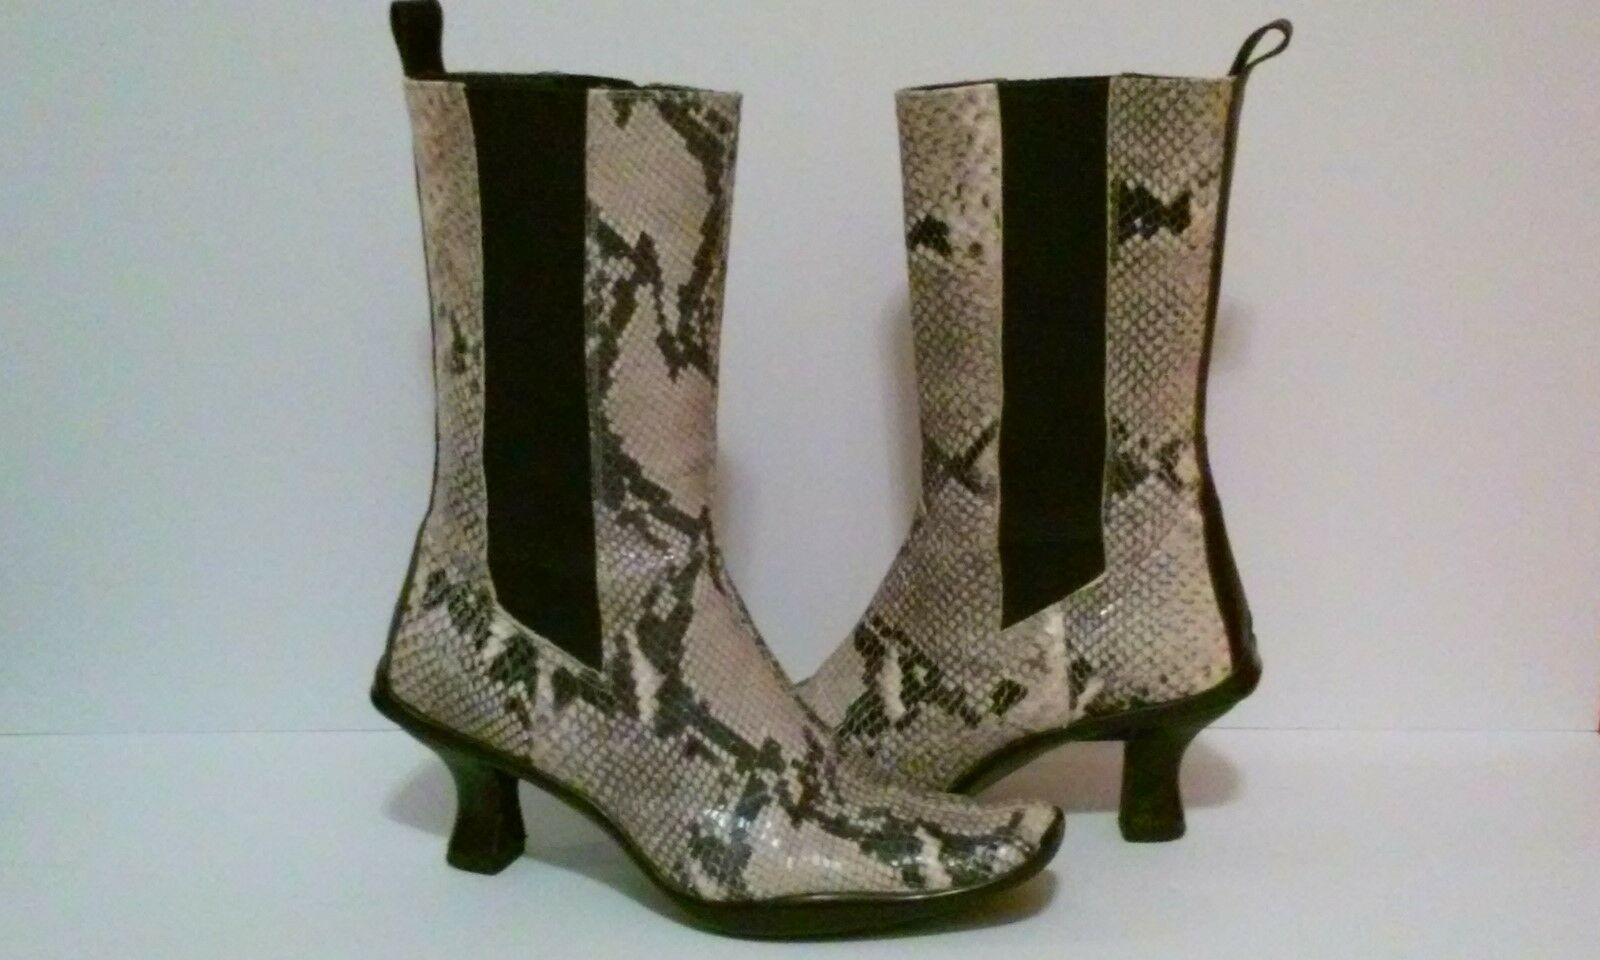 DONALD J PLINER SNAKESKIN BOOTS ON WOMEN SNAKE LEATHER SLIP ON BOOTS MID CALF SIZE 7 US 142fd6